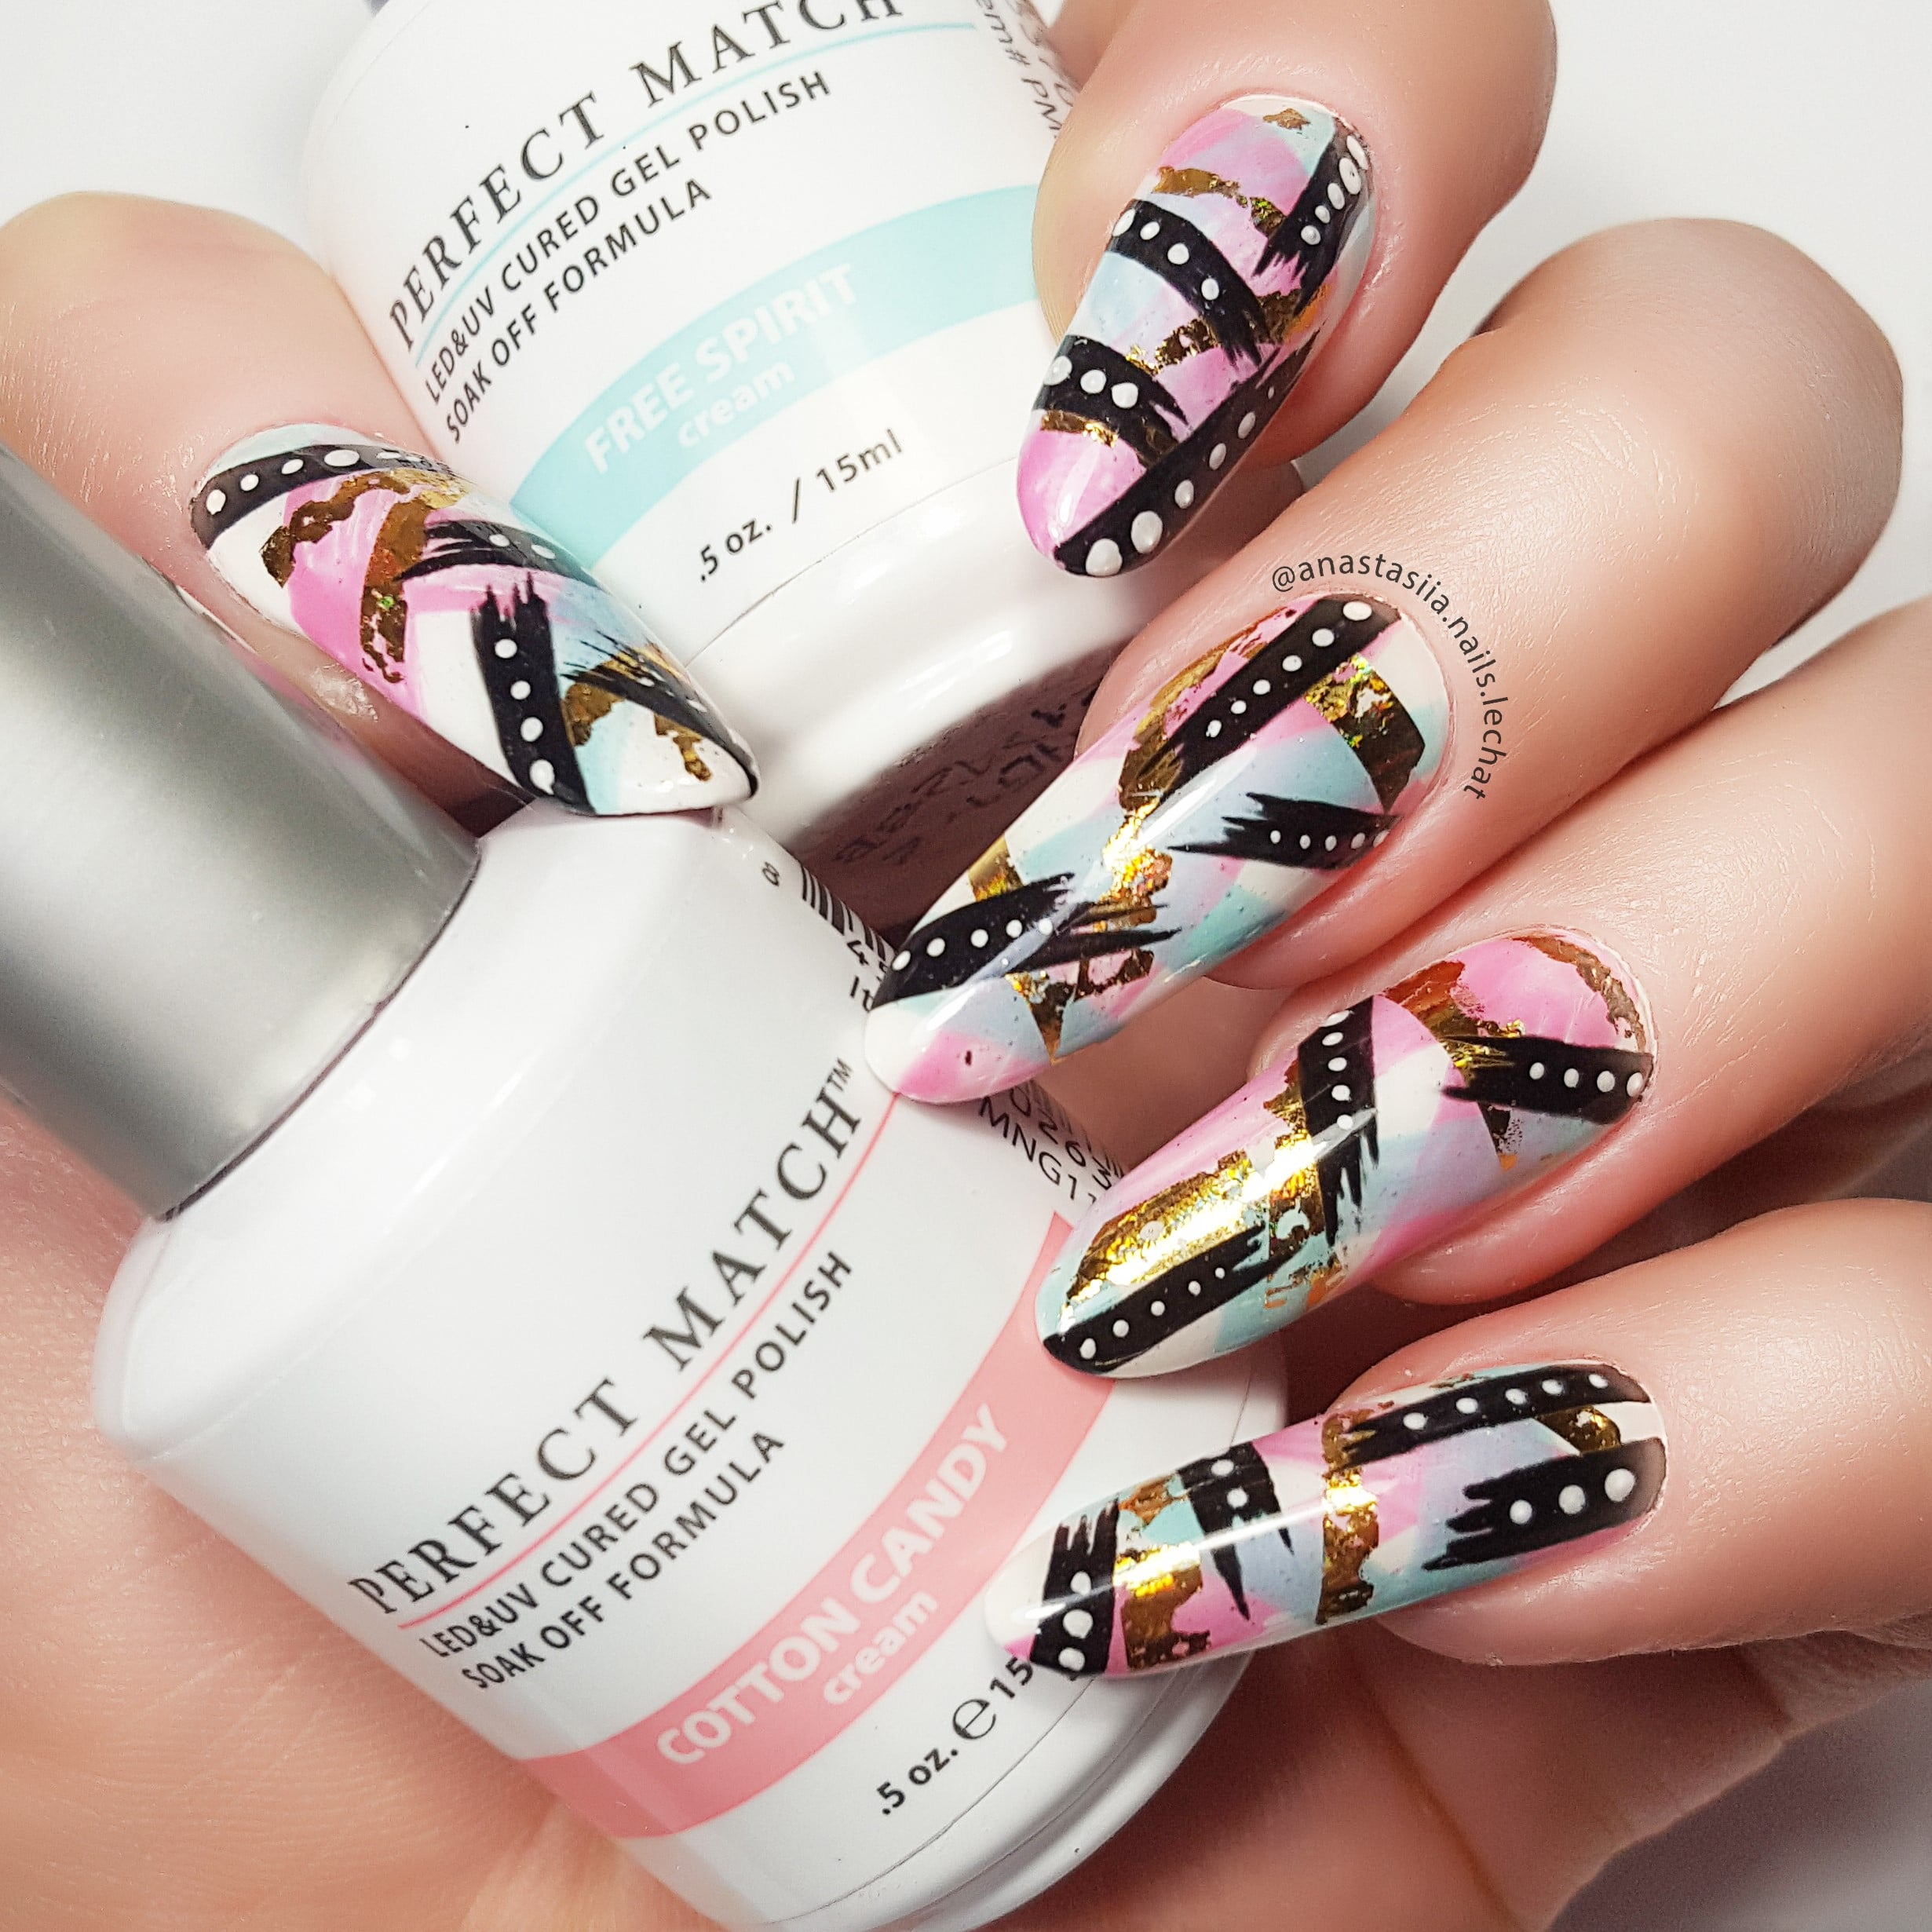 Perfect Match nail art using cotton candy and free spirit